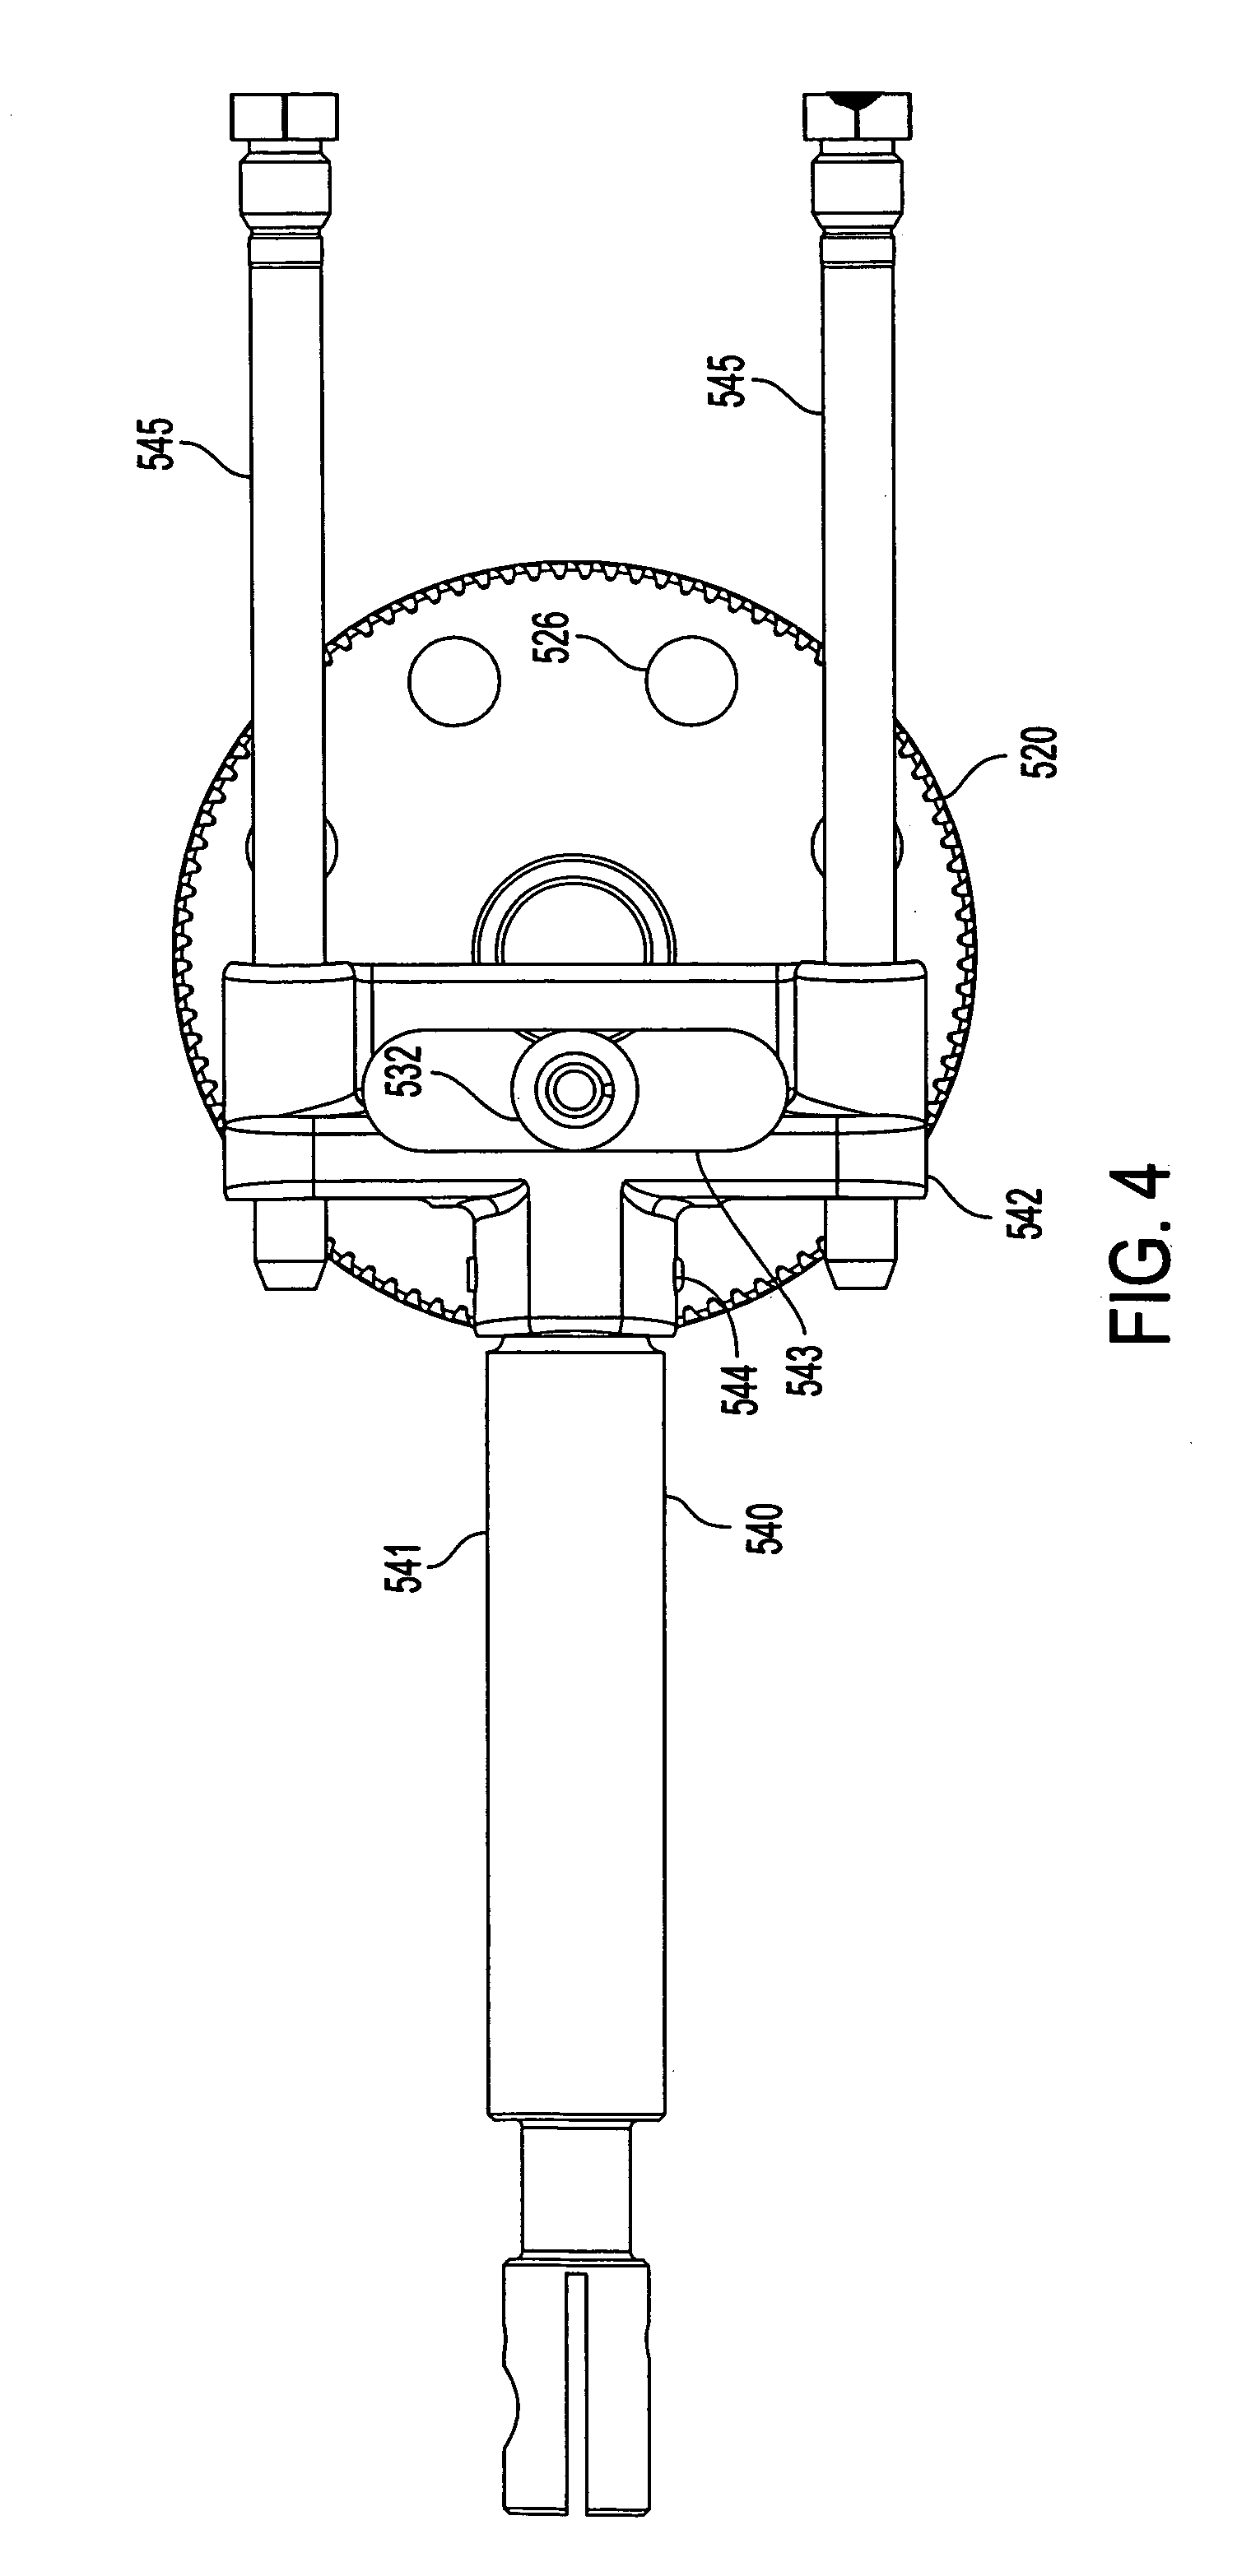 Reciprocating Gear Mechanism : Patent us reciprocating counterweight structure